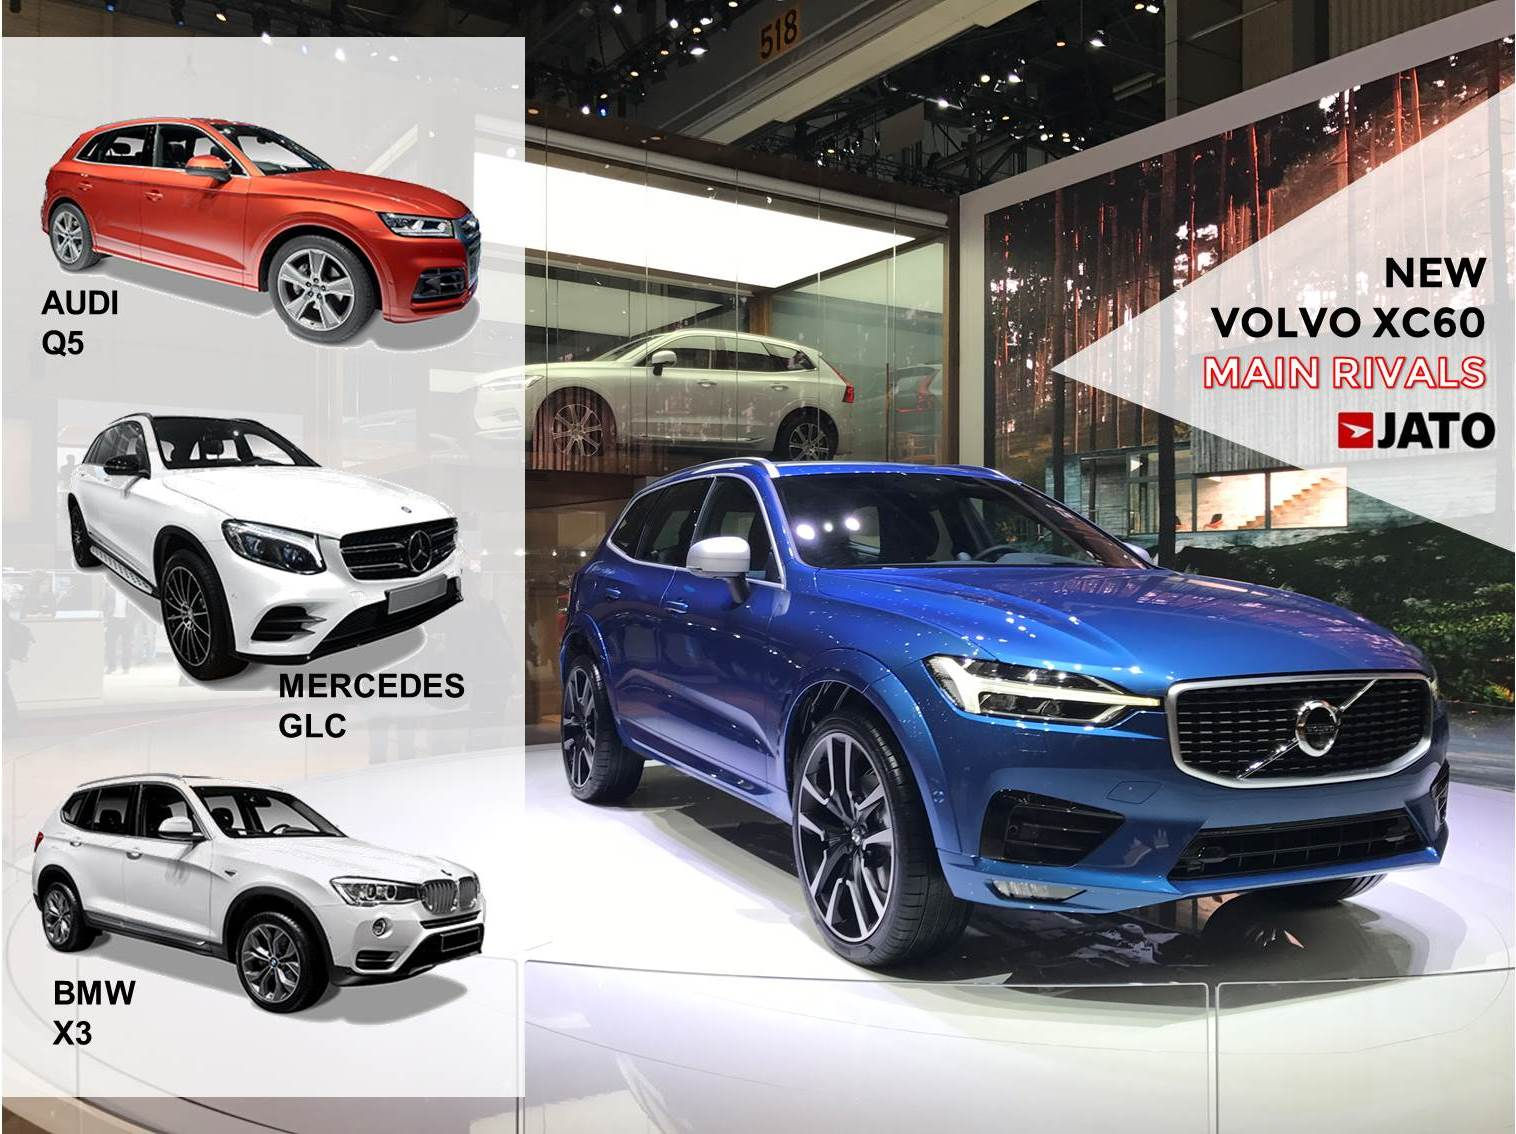 With the new generation, the Volvo XC60 is expected to continue topping the premium midsize SUV segment in Europe.